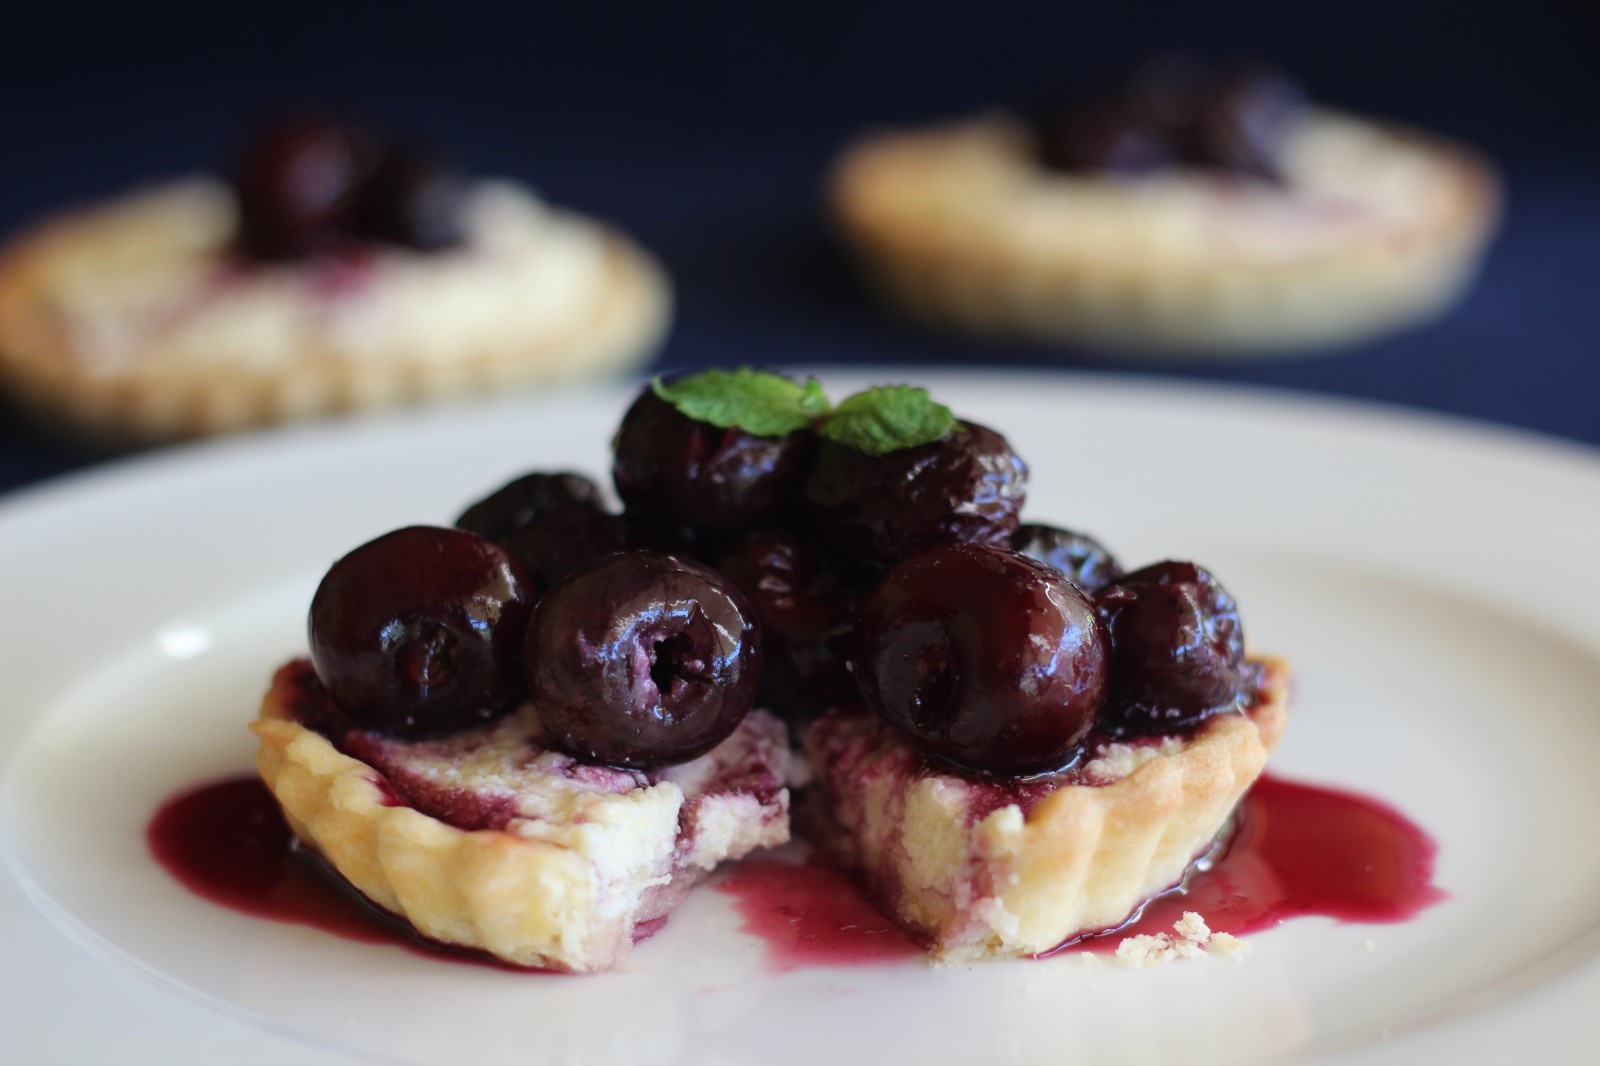 White Chocolate Tart with Cherries in Red Wine Sauce